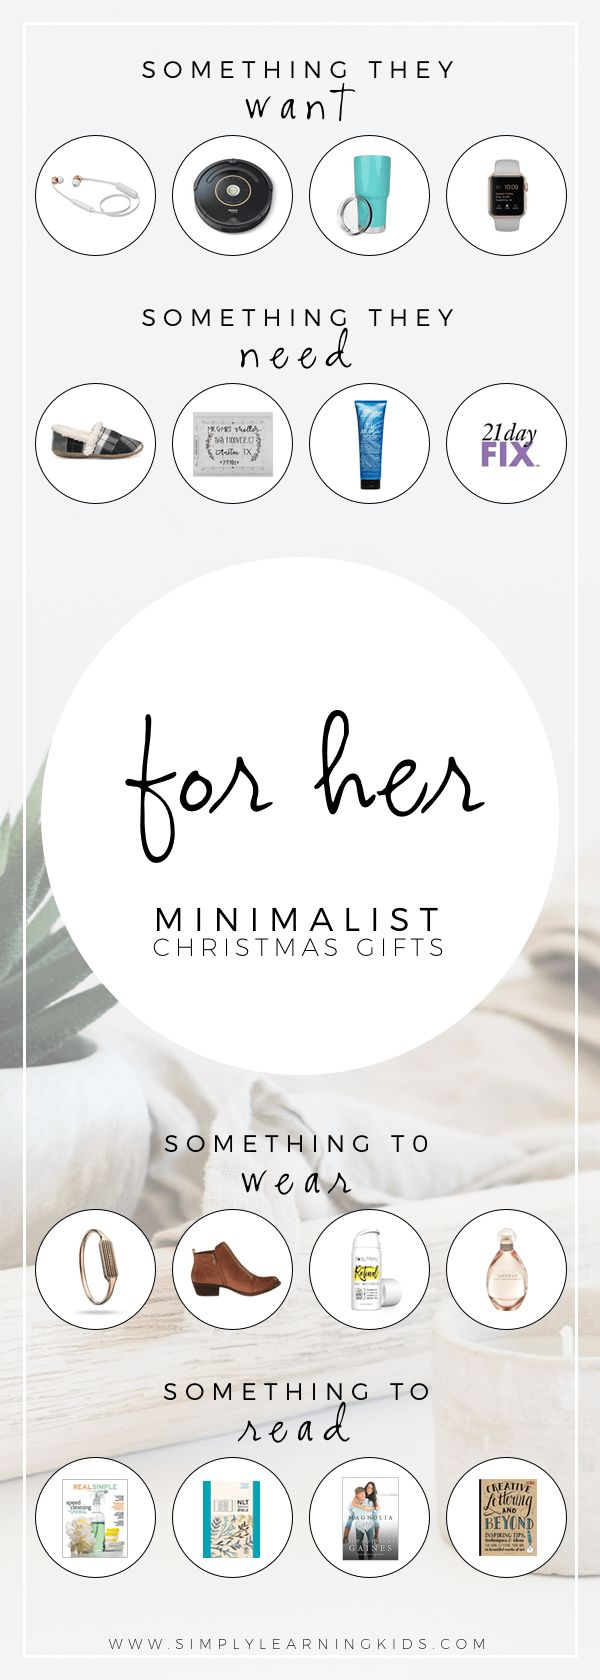 Christmas Gift Ideas For Woman Part - 47: Creative Gift Ideas For Women! Especially Great For Minimalists Or Those  Following The 4 Gift